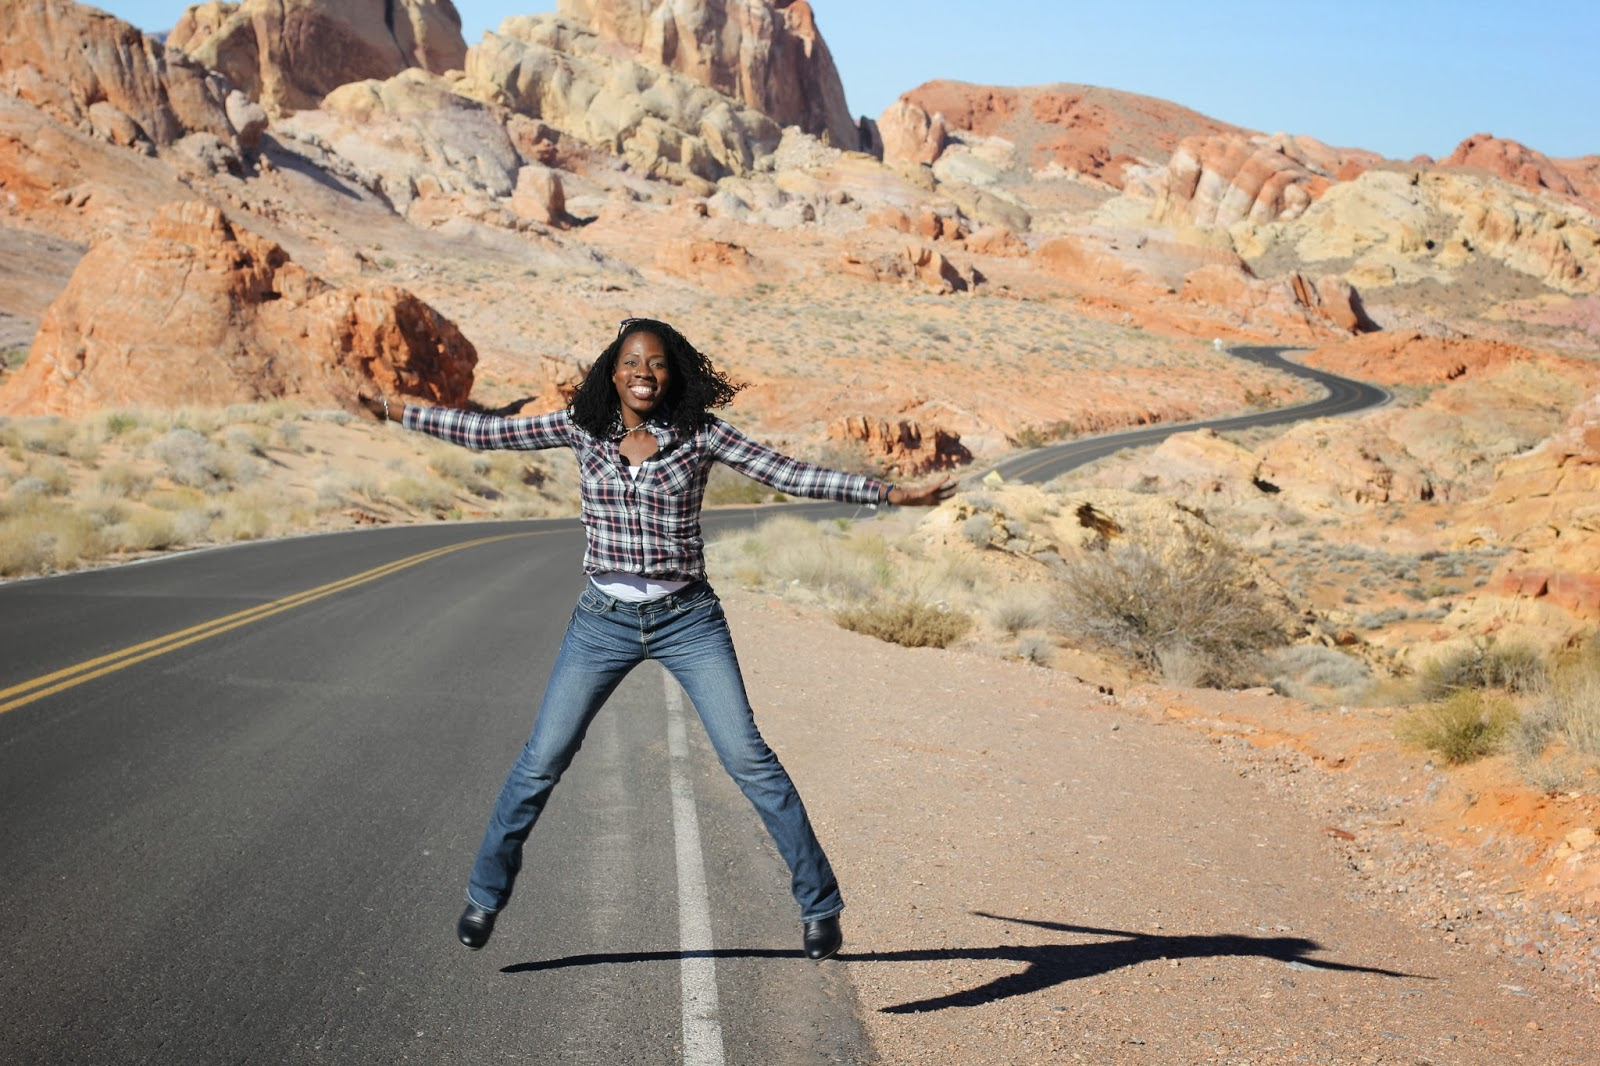 Las Vegas, Nevada: Sin City, Red Rock Canyon & Valley of Fire